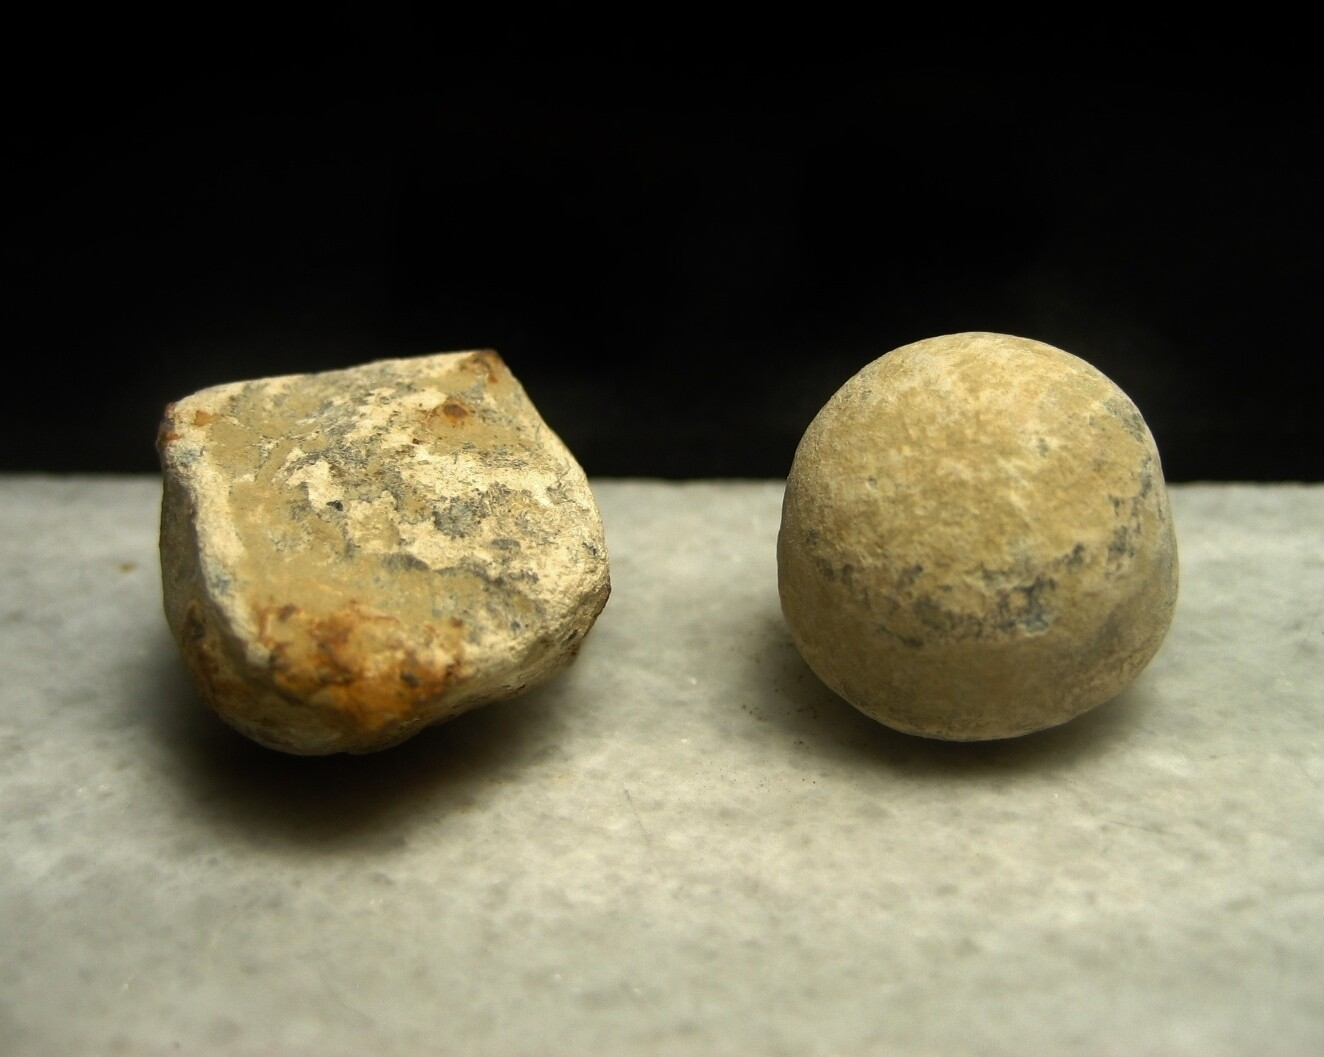 JUST ADDED ON 9/19 - THE BATTLE OF MALVERN HILL / AREA OF MAGRUDER'S ADVANCE - Irregular Case Shot and .69 Caliber Musket Ball from Buck & Ball Round  - Found April 27, 1963